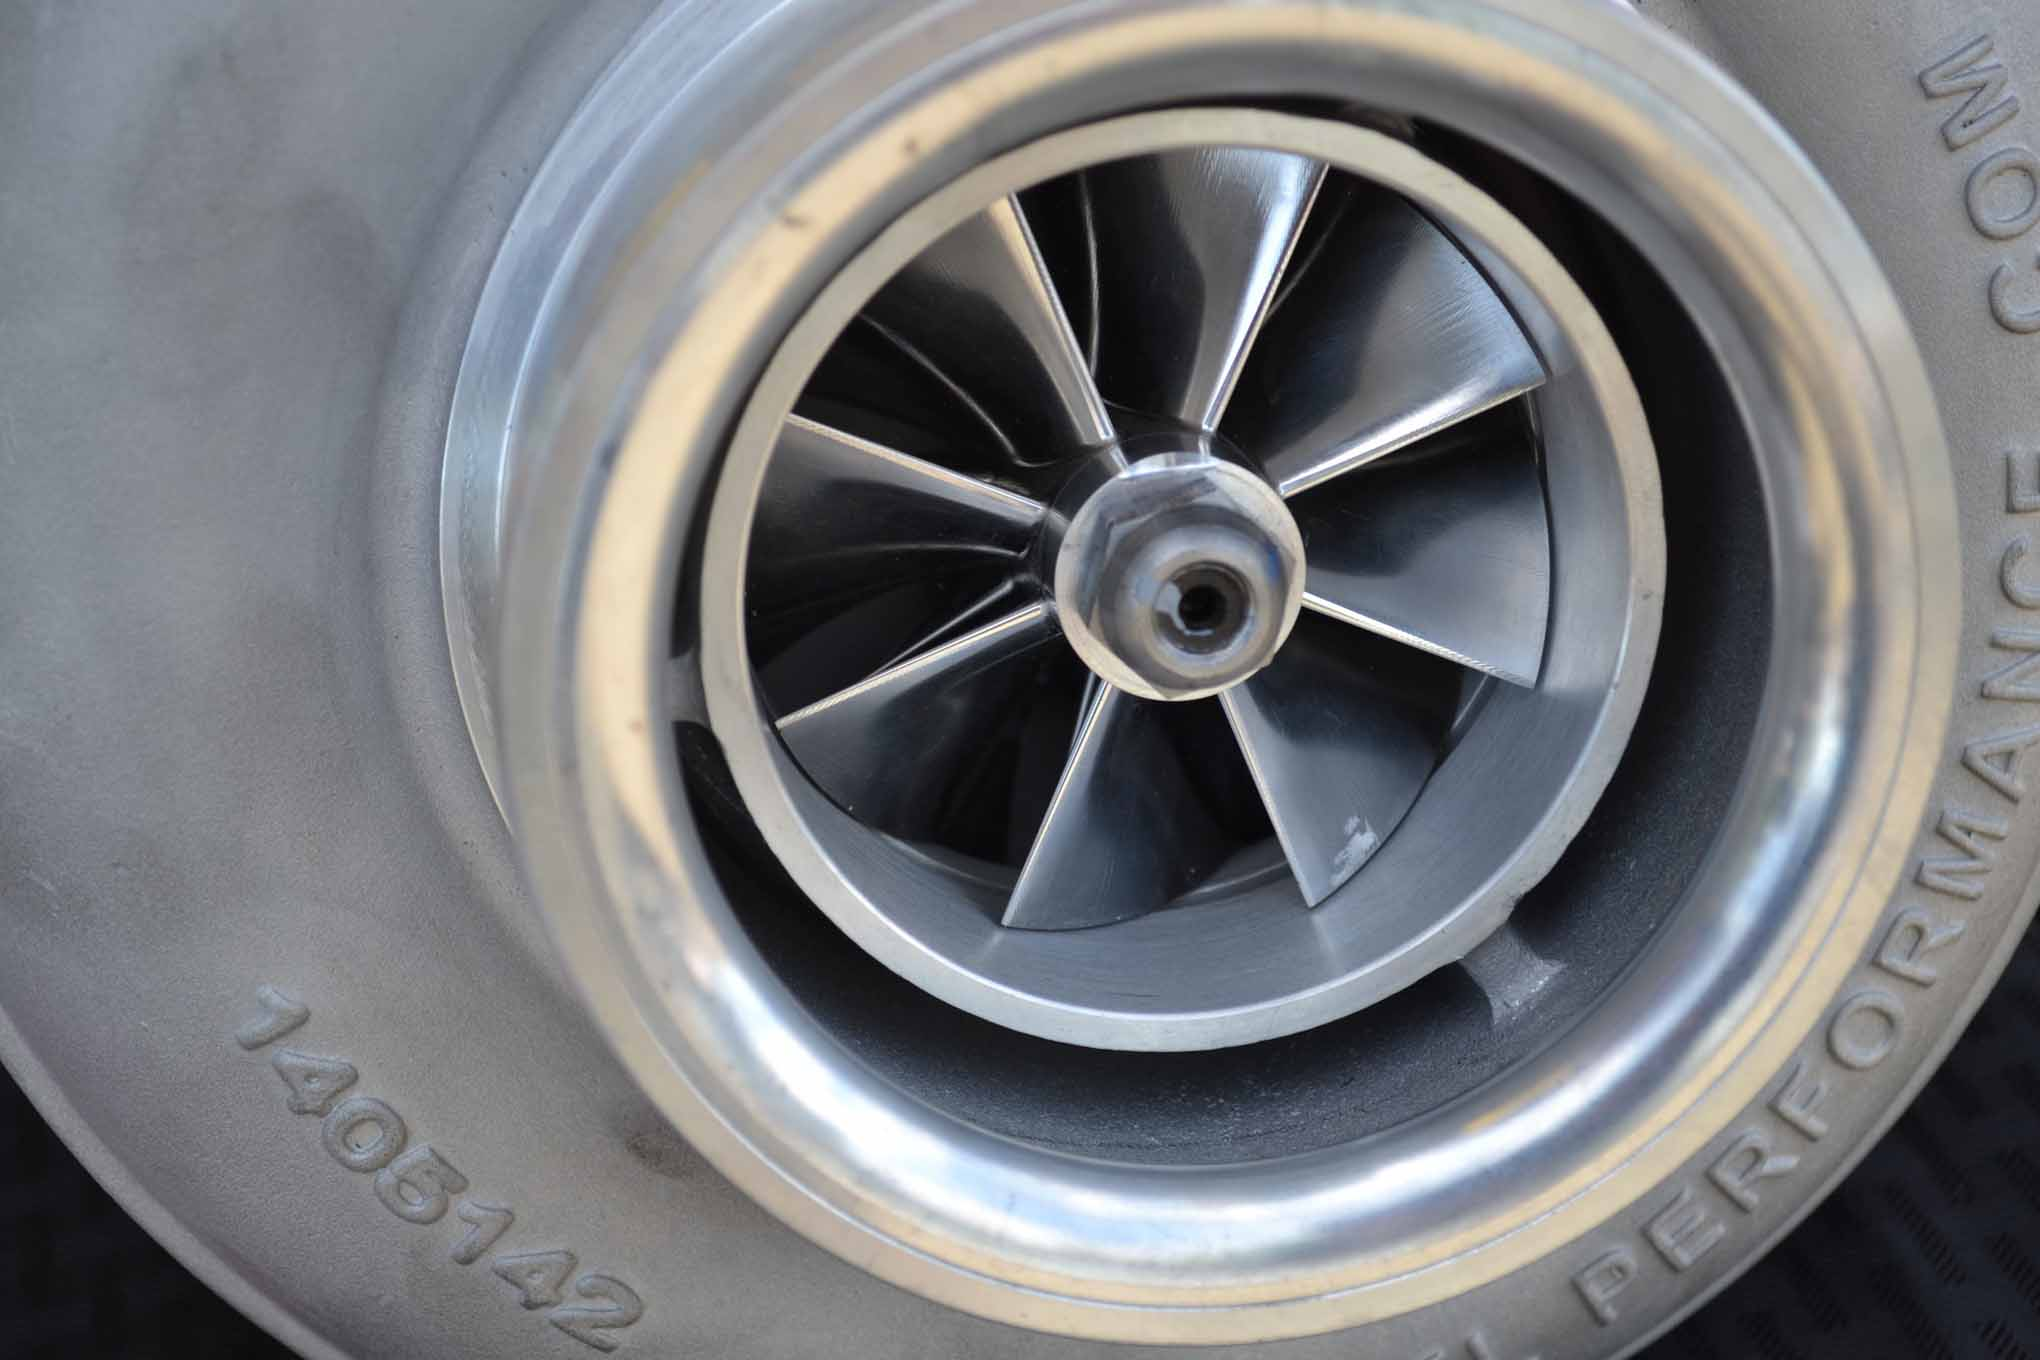 The latest trend in turbos are billet wheels, which are CNC'd (as opposed to cast) and offer very high strength along with favorable flow numbers. Most of these new-generation turbos are good to a 4 to 5:1 pressure ratio (about 45 to 60 psi), so overspeeding a correctly sized turbo usually isn't a problem.